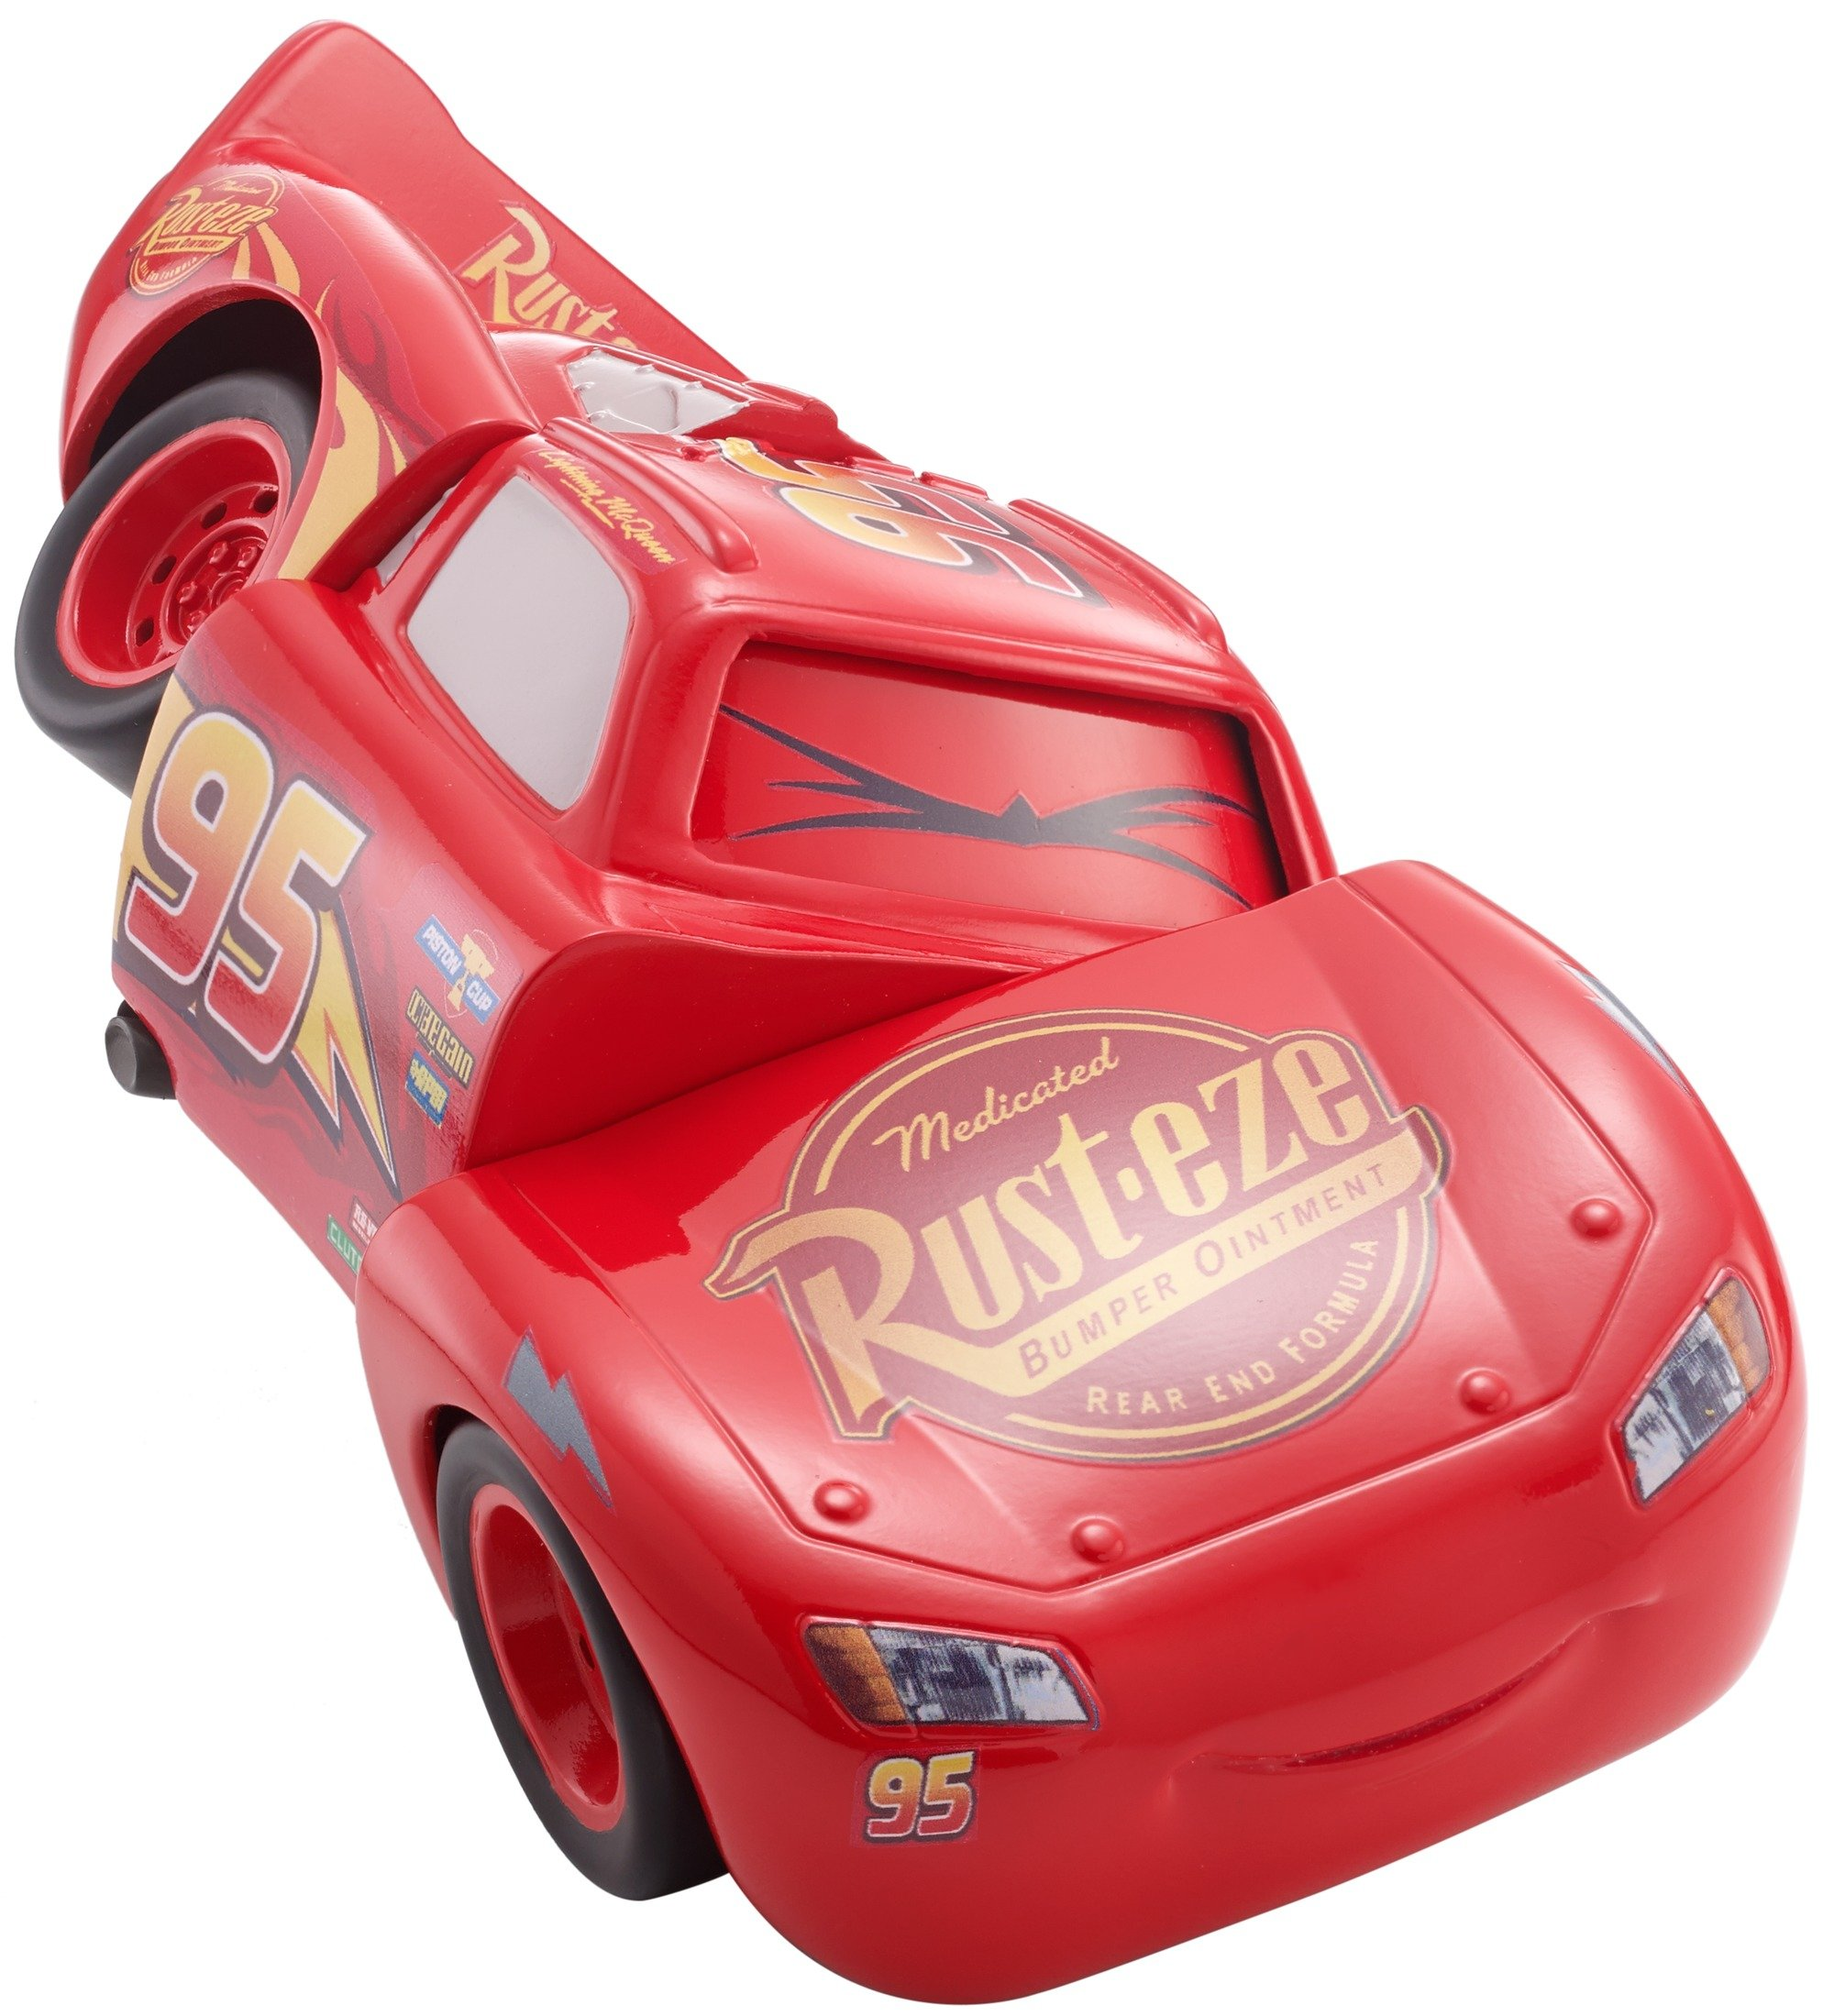 Disney DYW39 Pixar Cars 3 Race and Reck Lightning McQueen Vehicle Disney New Disney Pixar Cars 3 Twisted Crashers vehicle.  His body twists and his eyes change after the crash!  Restore him to his former; pre smash glory by simply twisting the car back into place! 9